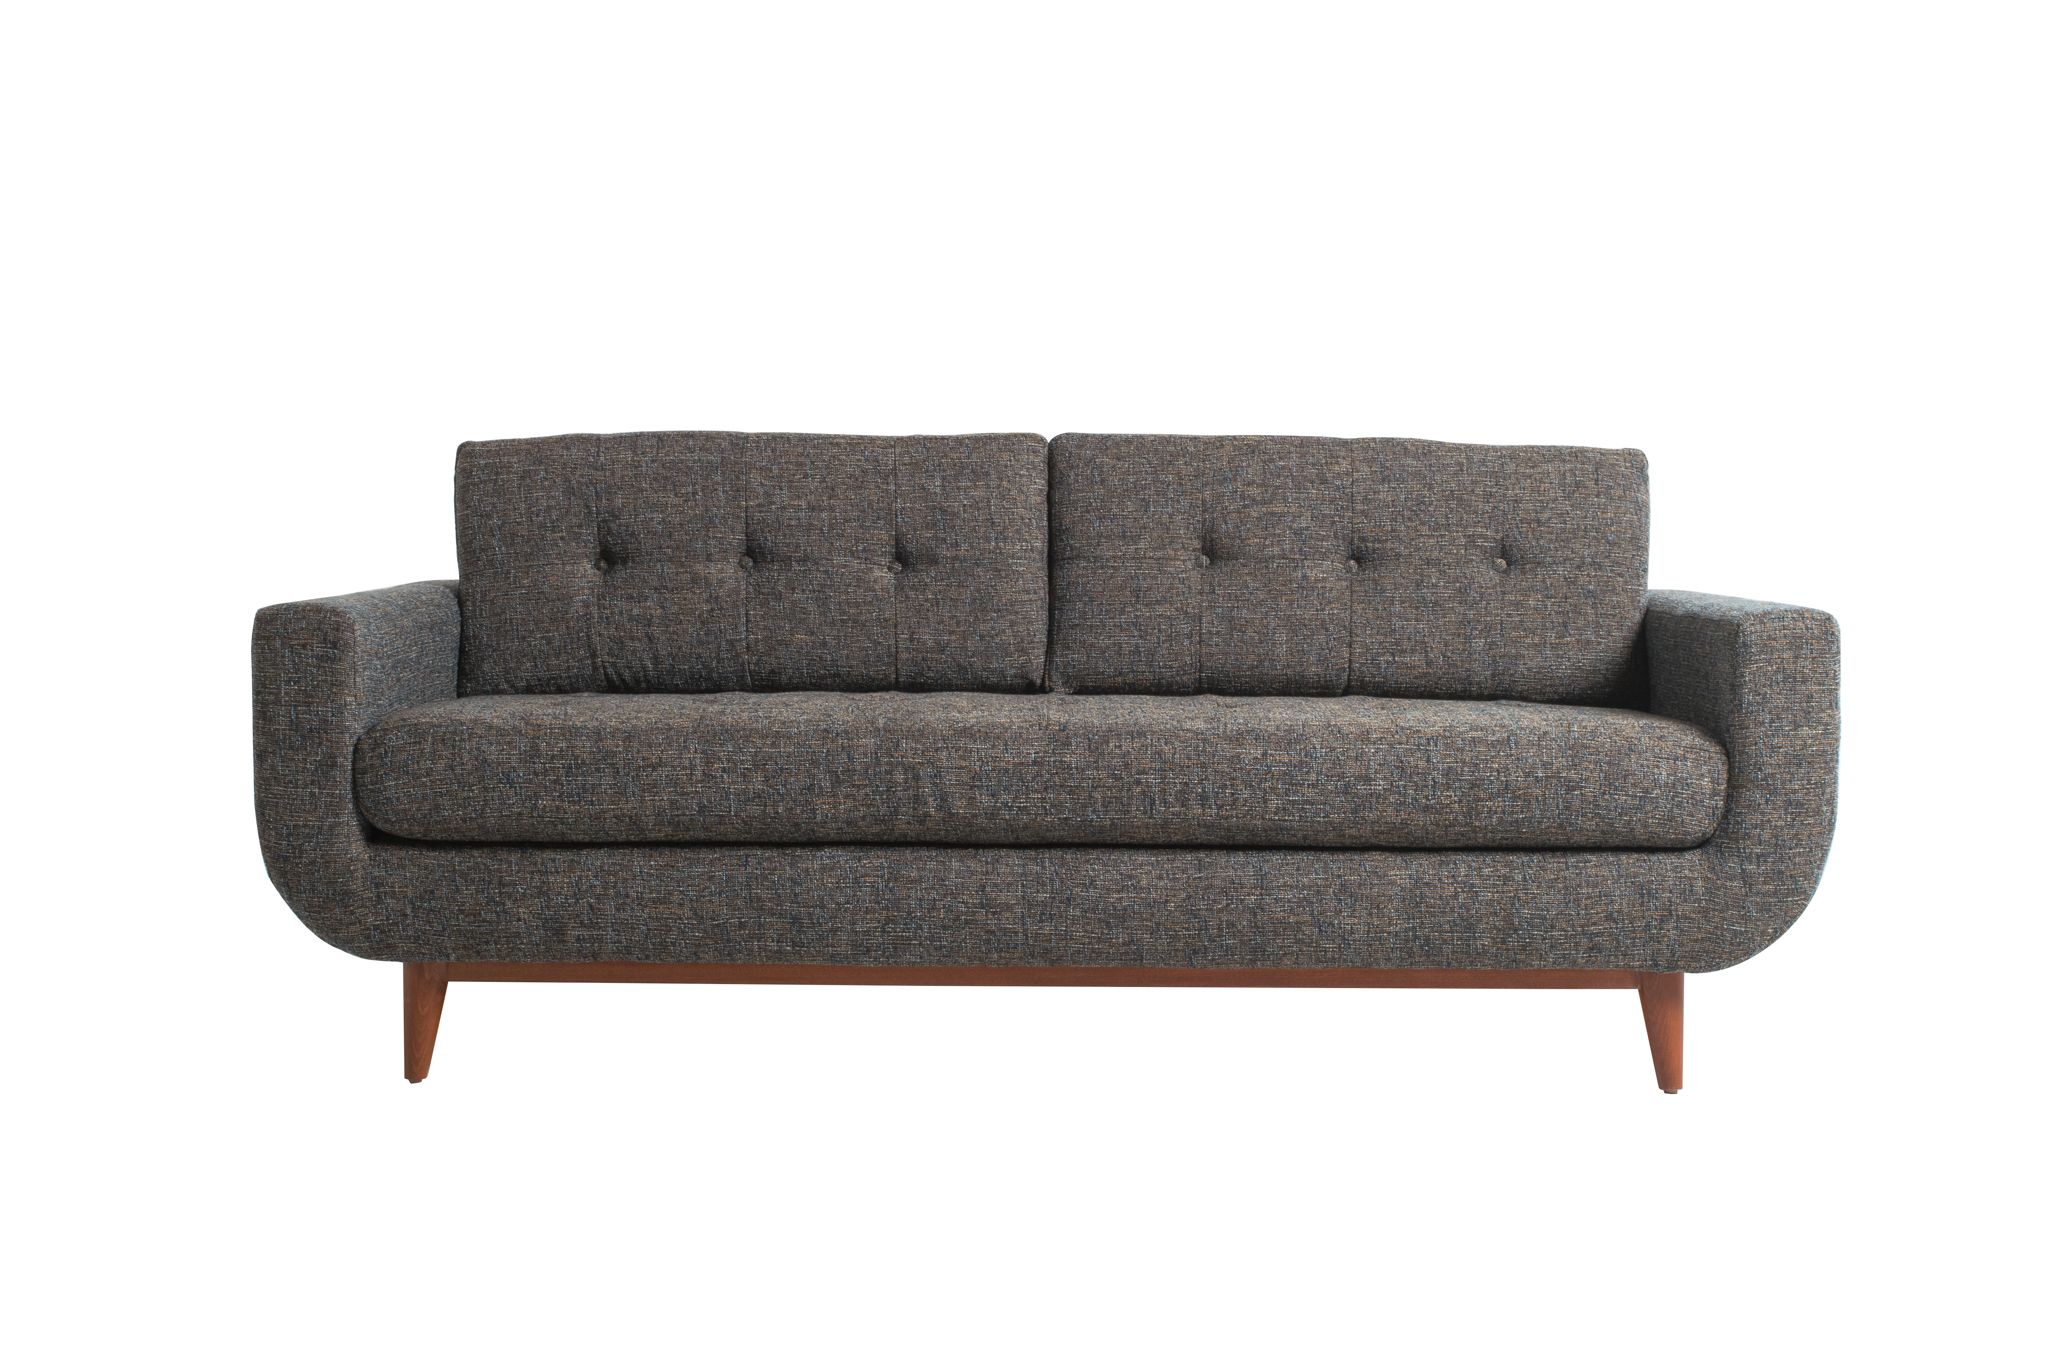 Gervin Sofa In Cordova Eclipse Httpjoybirdcomsofasgervin